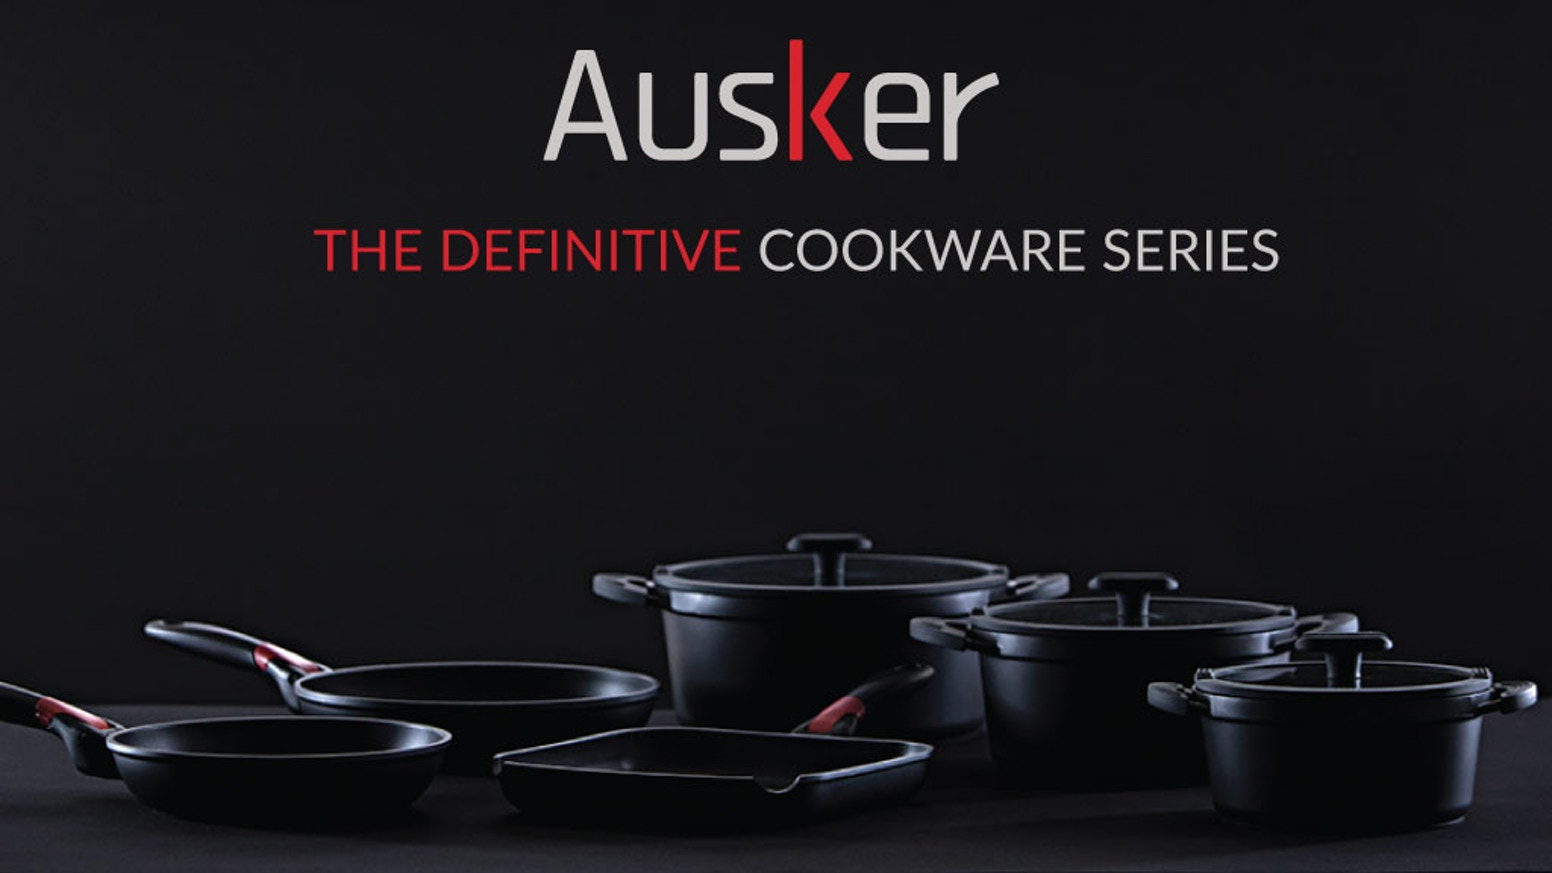 Once again Ausker revolutionizes the home cooking experience with the new series of high quality Pots, Frying Pans and Grills.